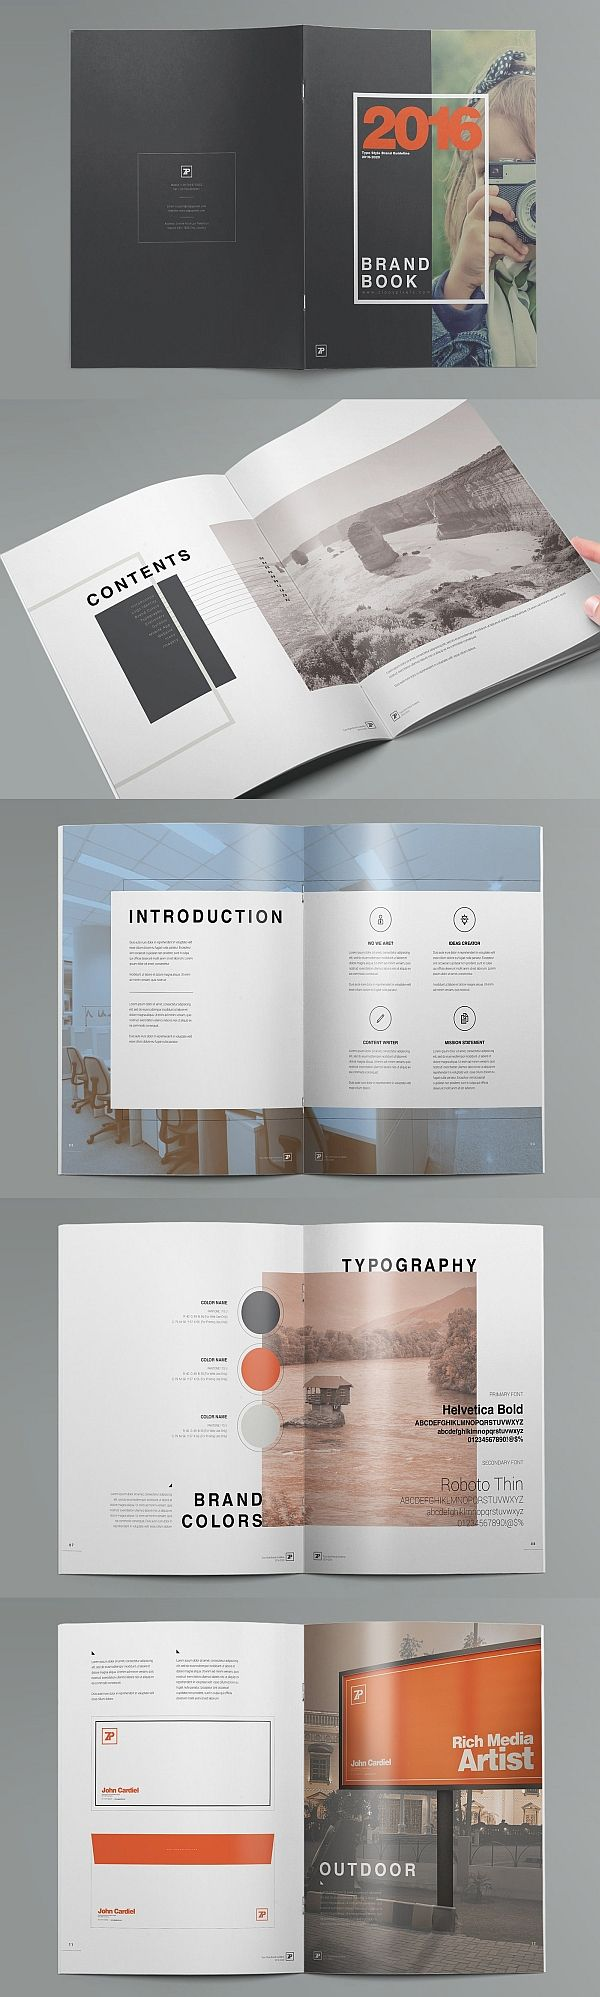 The Muse Brand Guide Template Brand Guide Brand Guidelines Template Brand Book